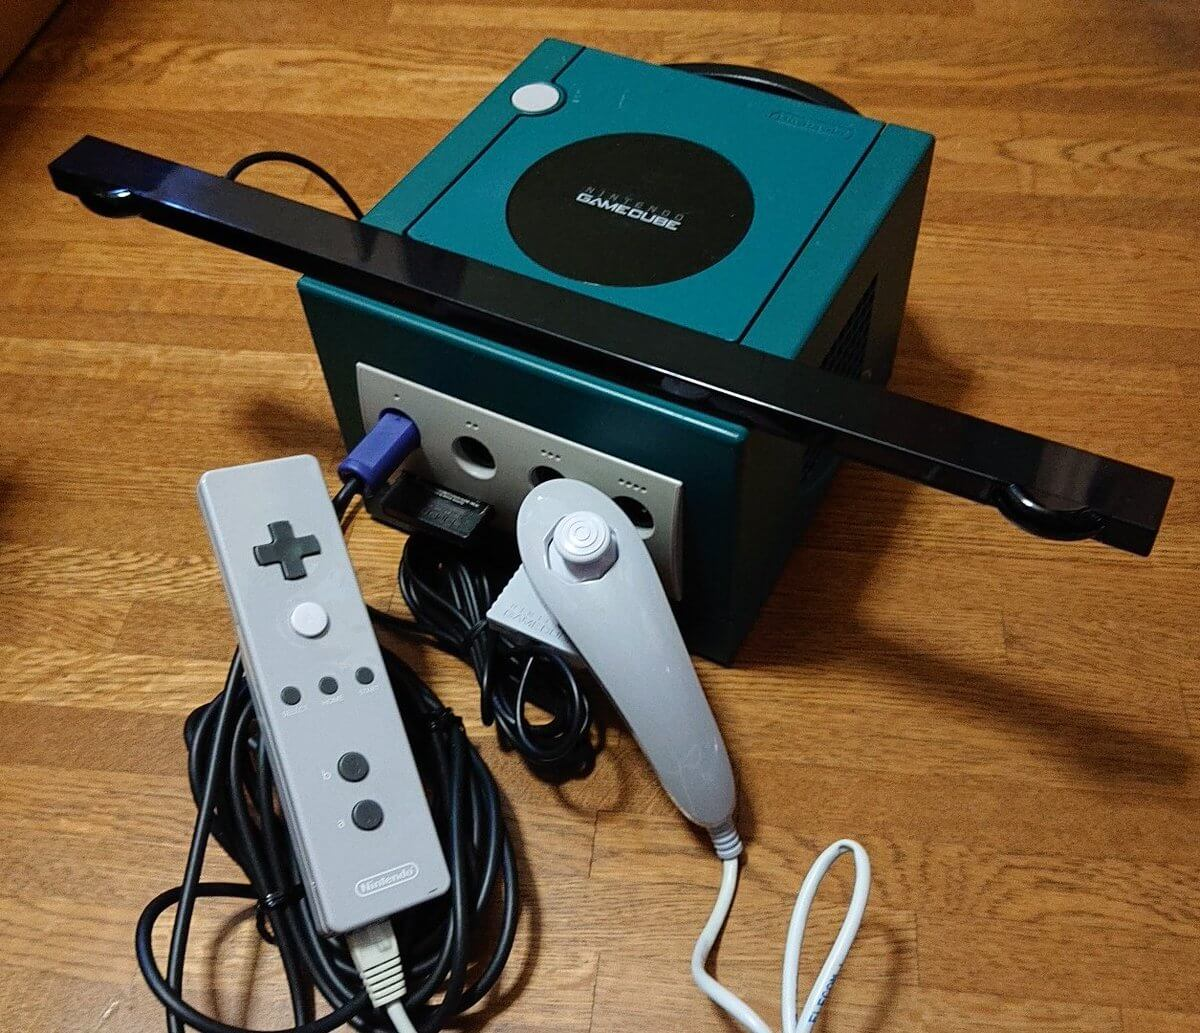 Do Wii Component cables work with Gamecube? - GameCube